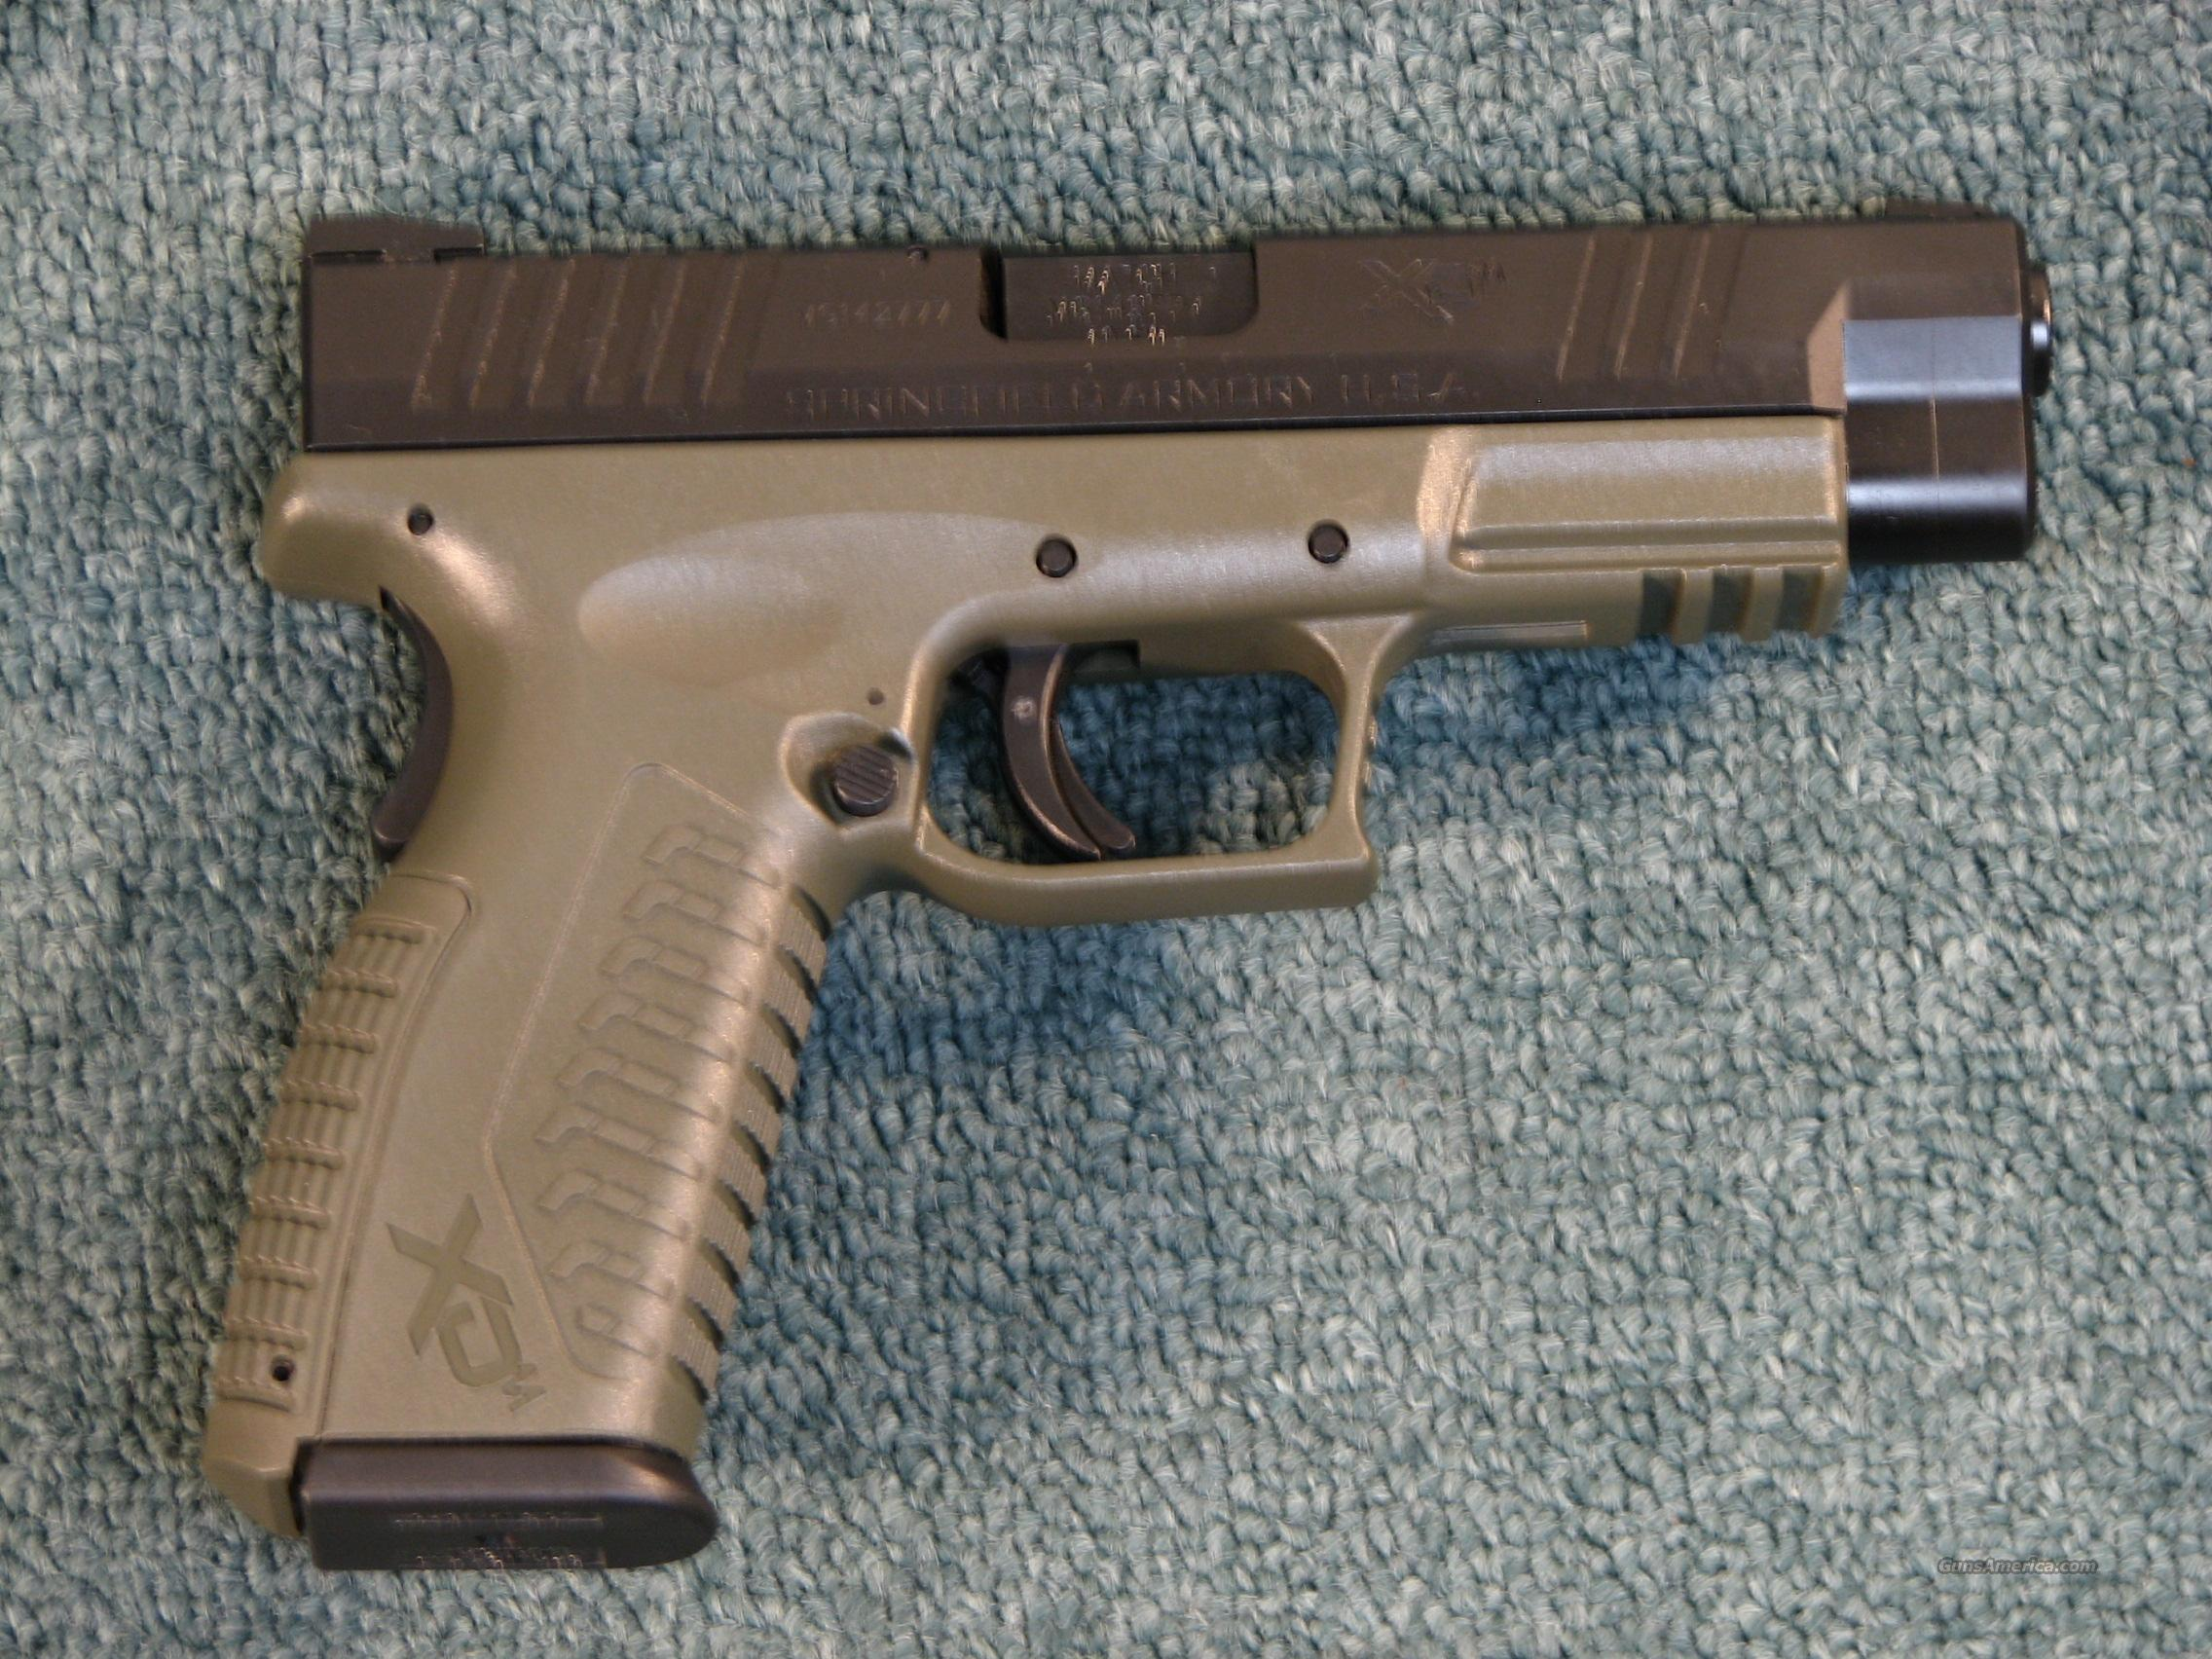 SPRINGFIELD XDM .40 TWO-TONE OD-green  Guns > Pistols > Springfield Armory Pistols > XD (eXtreme Duty)